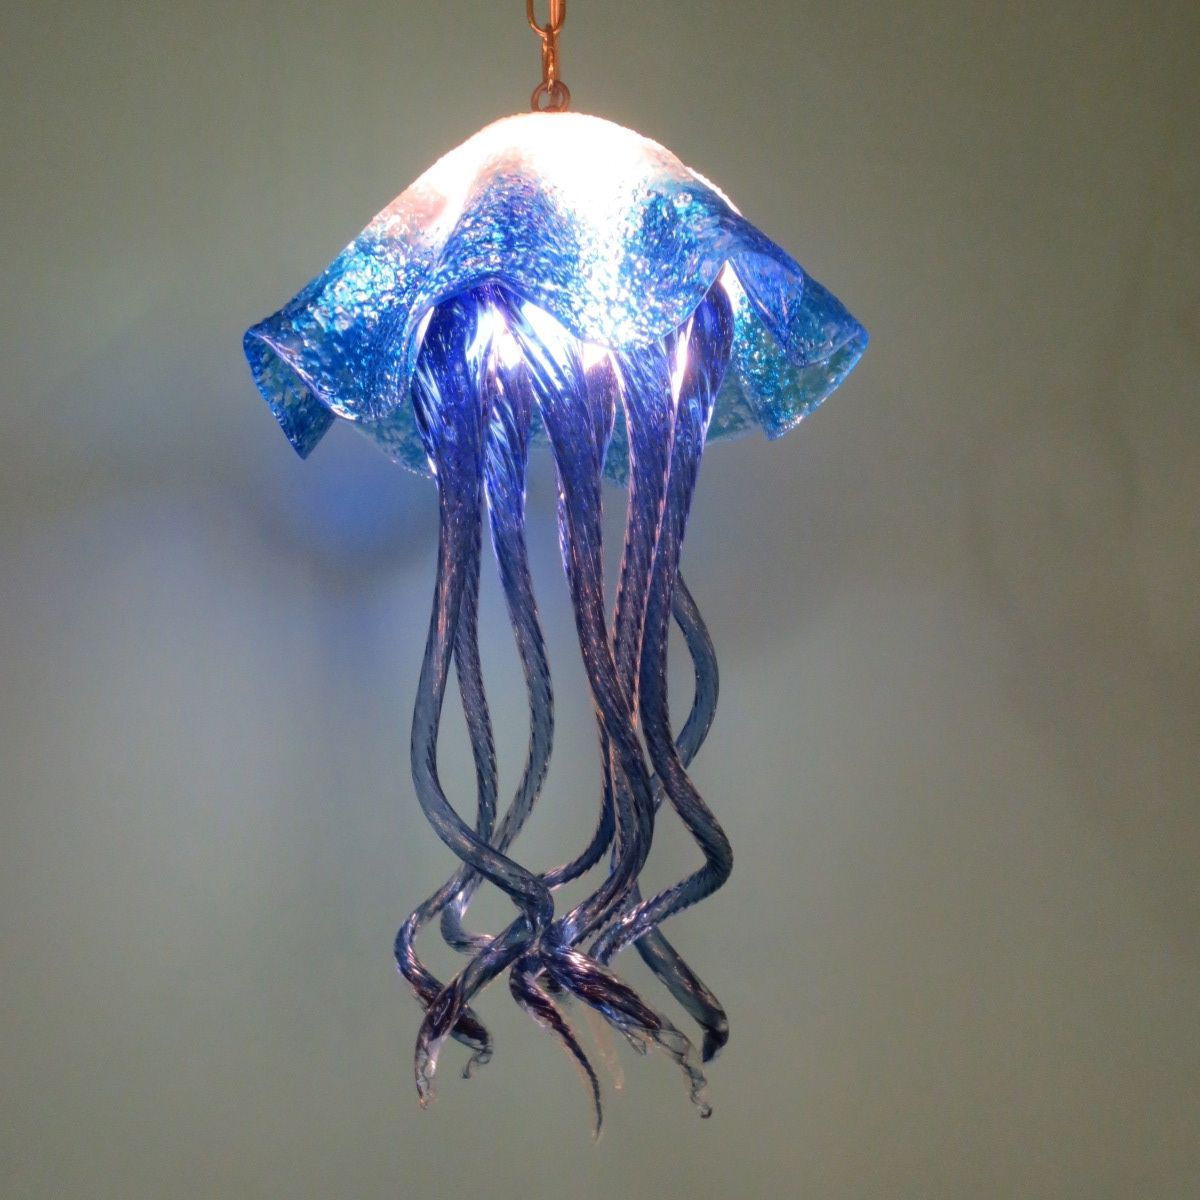 Buy A Hand Made Blown Glass Chandelier Jellyfish Light